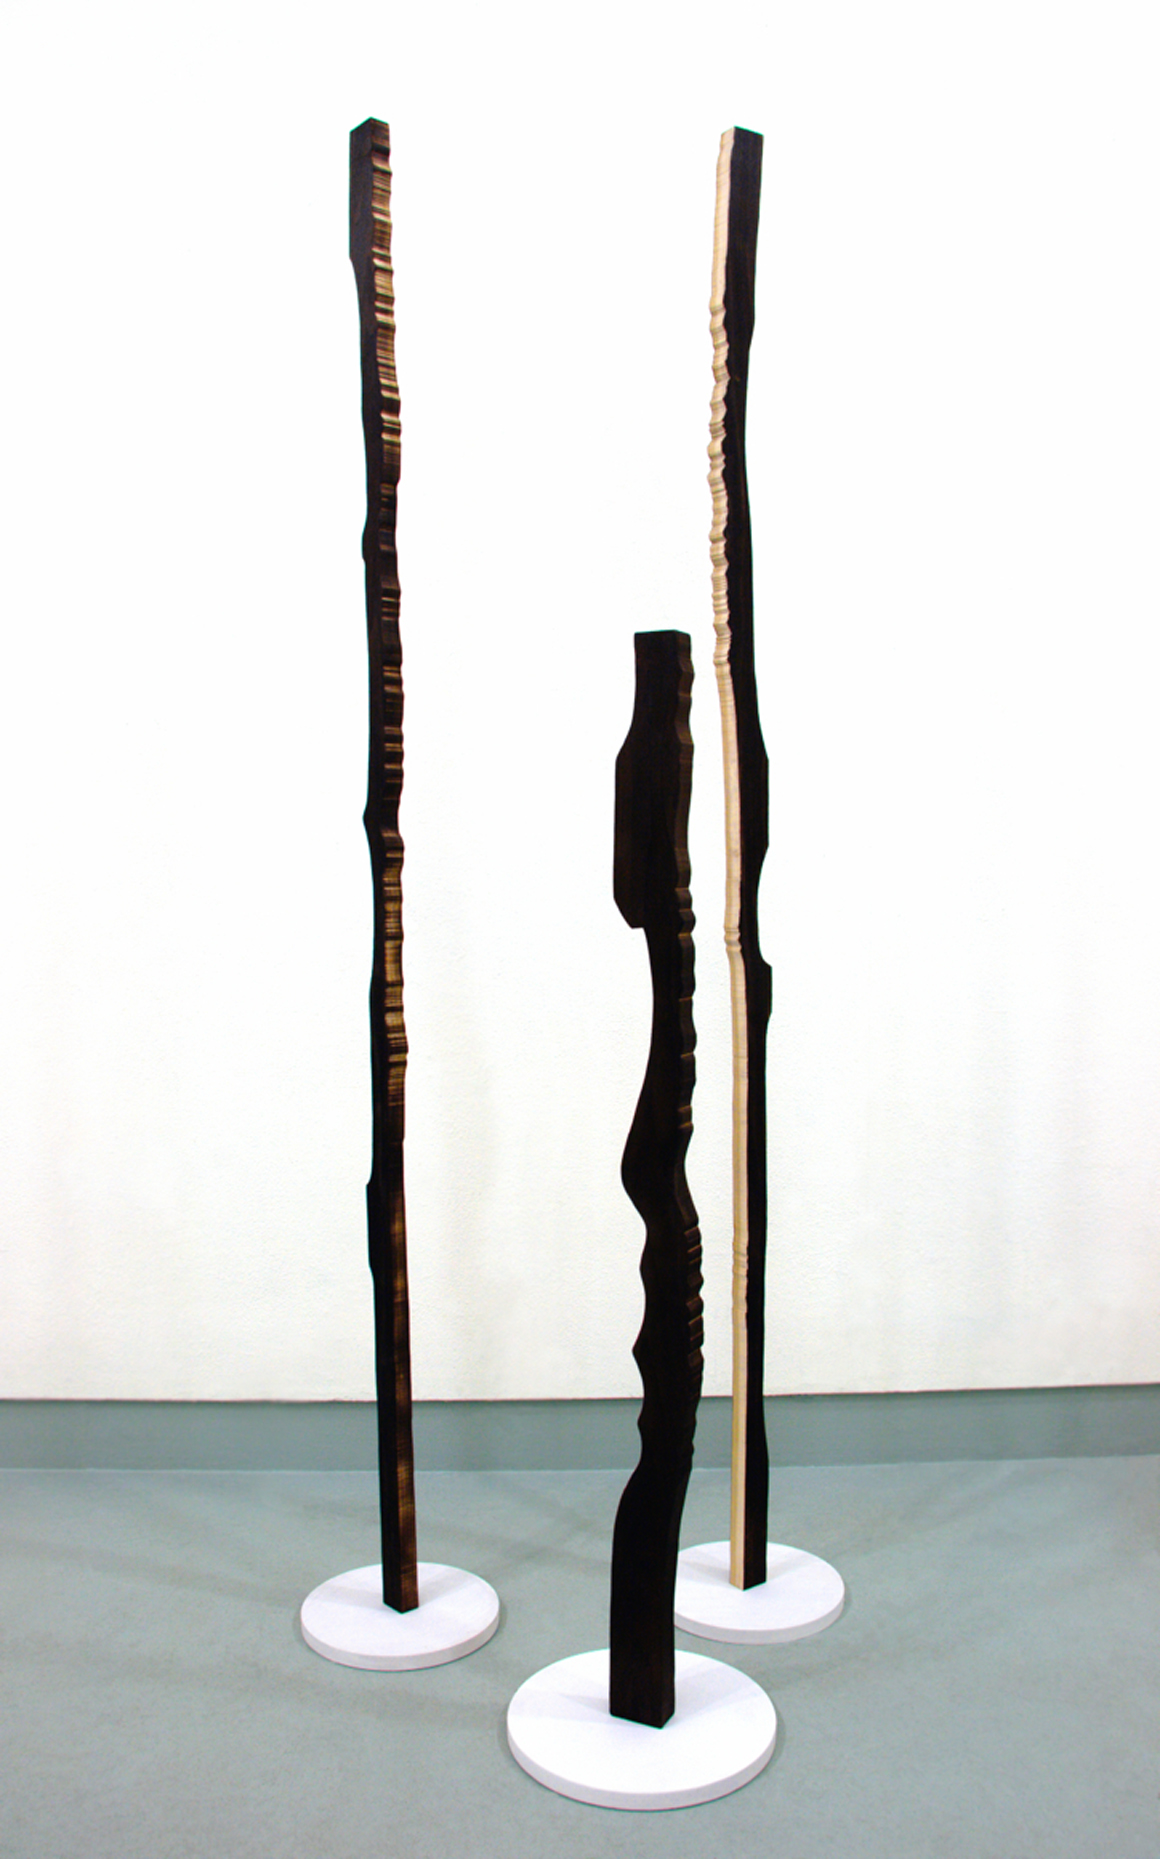 <p><em>Cross Section Totems</em><span class='media'>carbon (aspen wood and soot).</span>Size Variable<br>2014<br><a class='inquire' href='mailto:info@gildargallery.com?subject=Artwork Inquiry GBOO0001&body=I am interested in finding out more about Cross Section Totems by Geoff Booras'>Inquire</a></p>